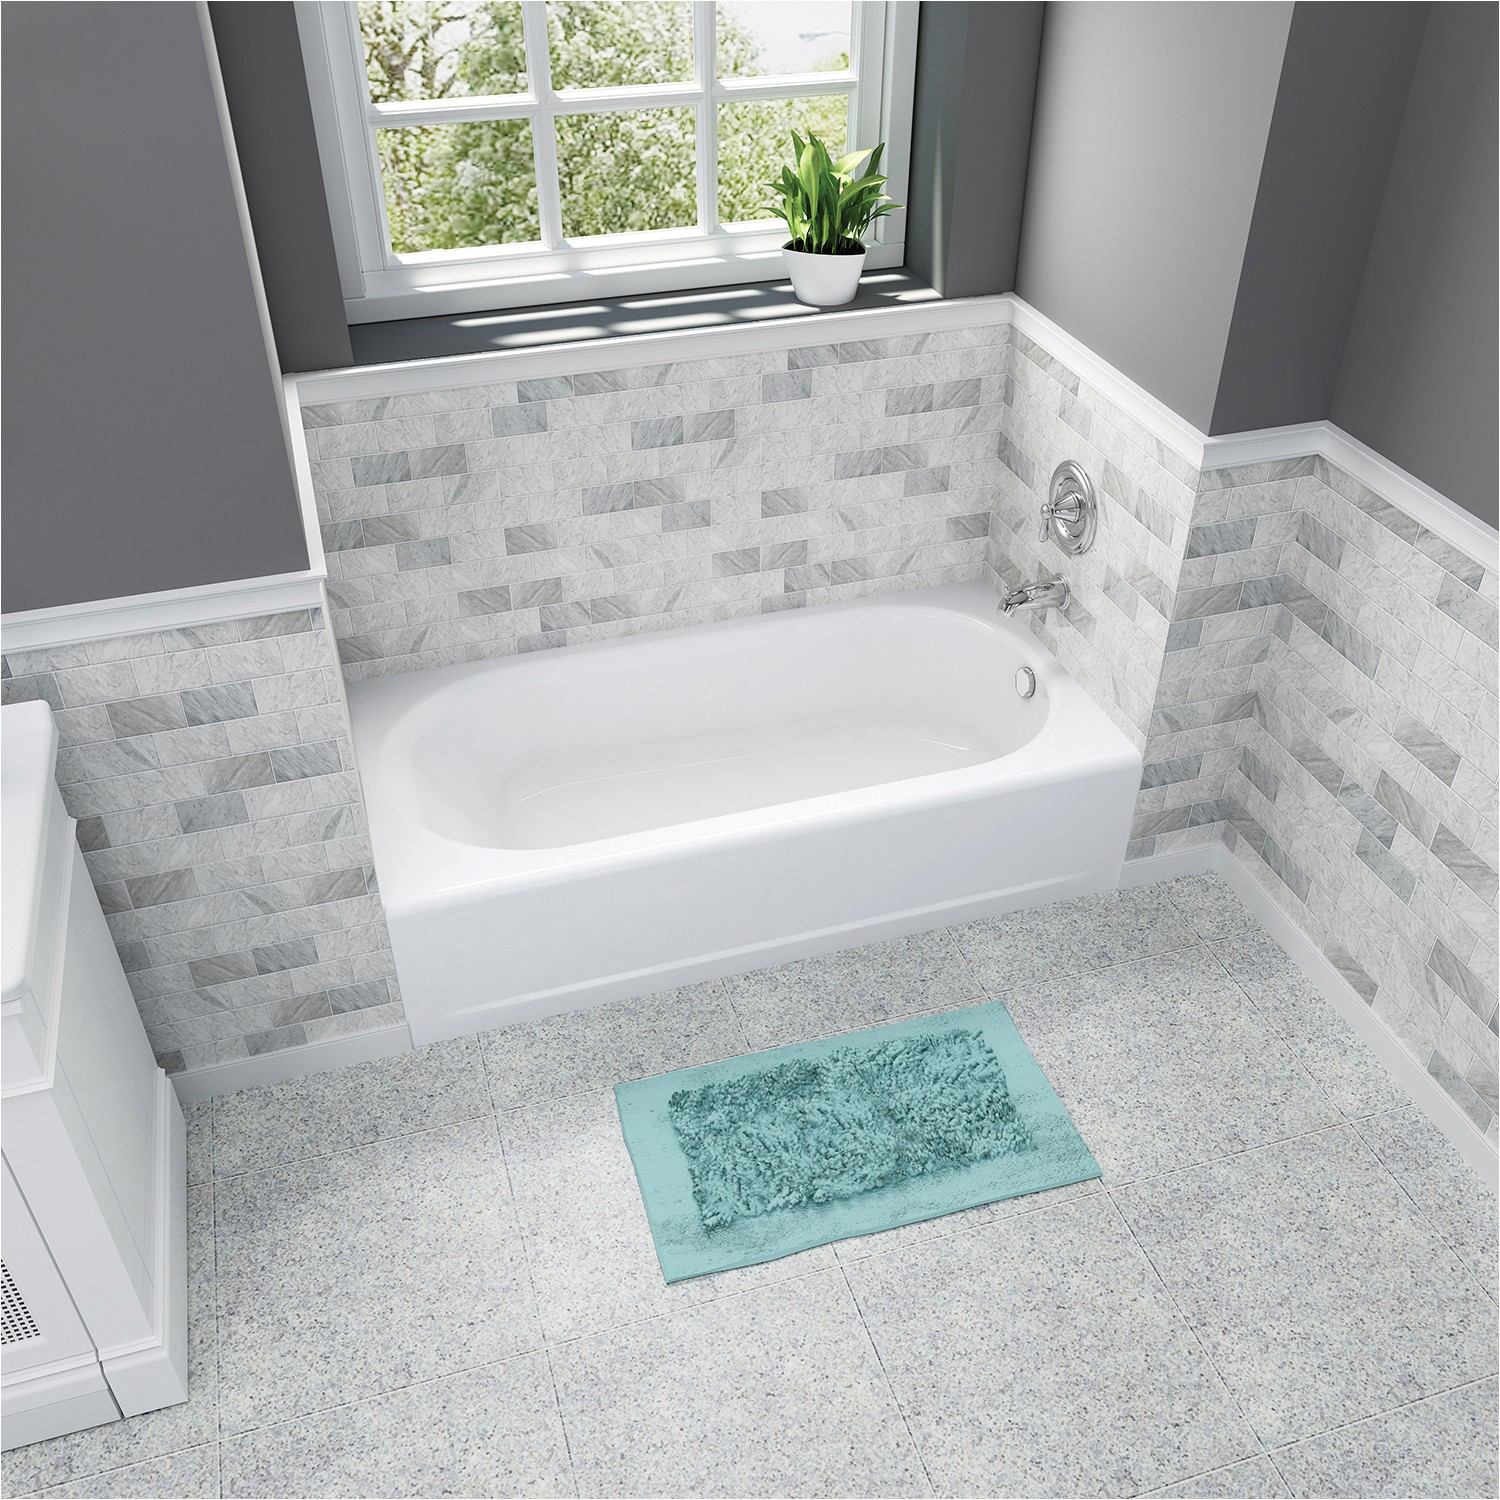 durable americast tubs offer innovative stansure slip resistant finish for improved bathroom safety